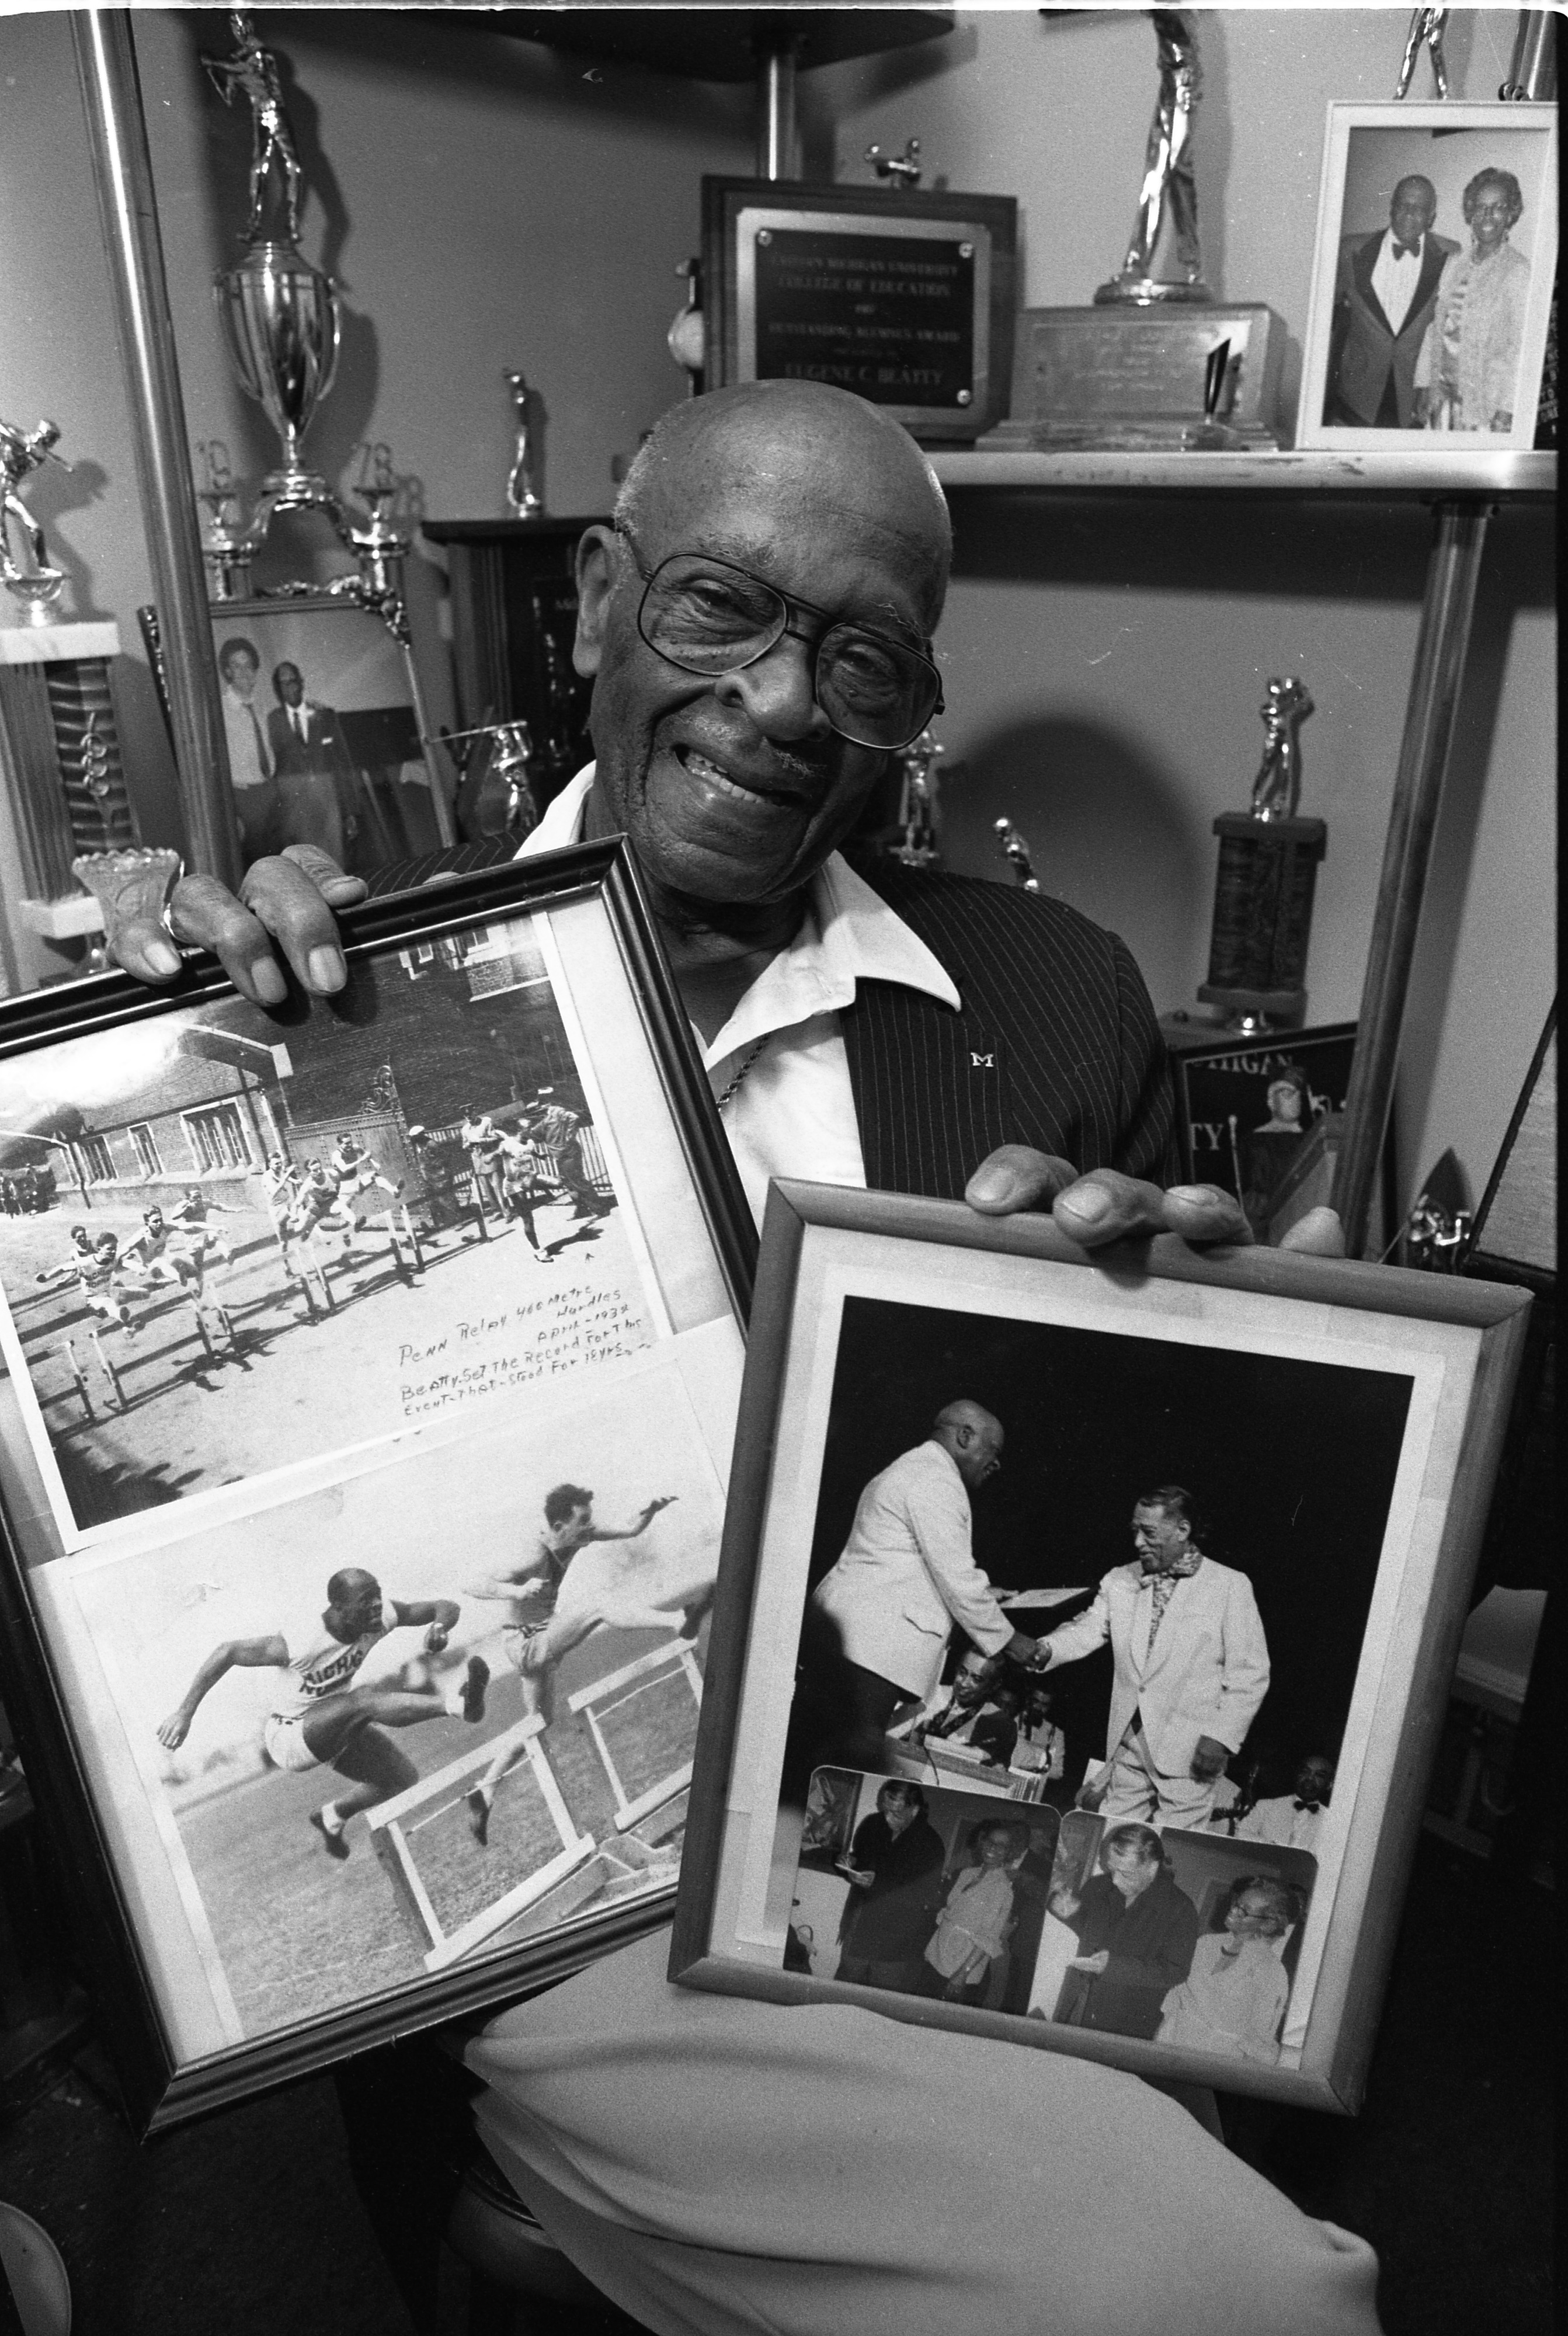 Eugene Beatty Showing Photos Of Himself In The Penn Relays & Meeting Duke Ellington, March 8, 1991 image